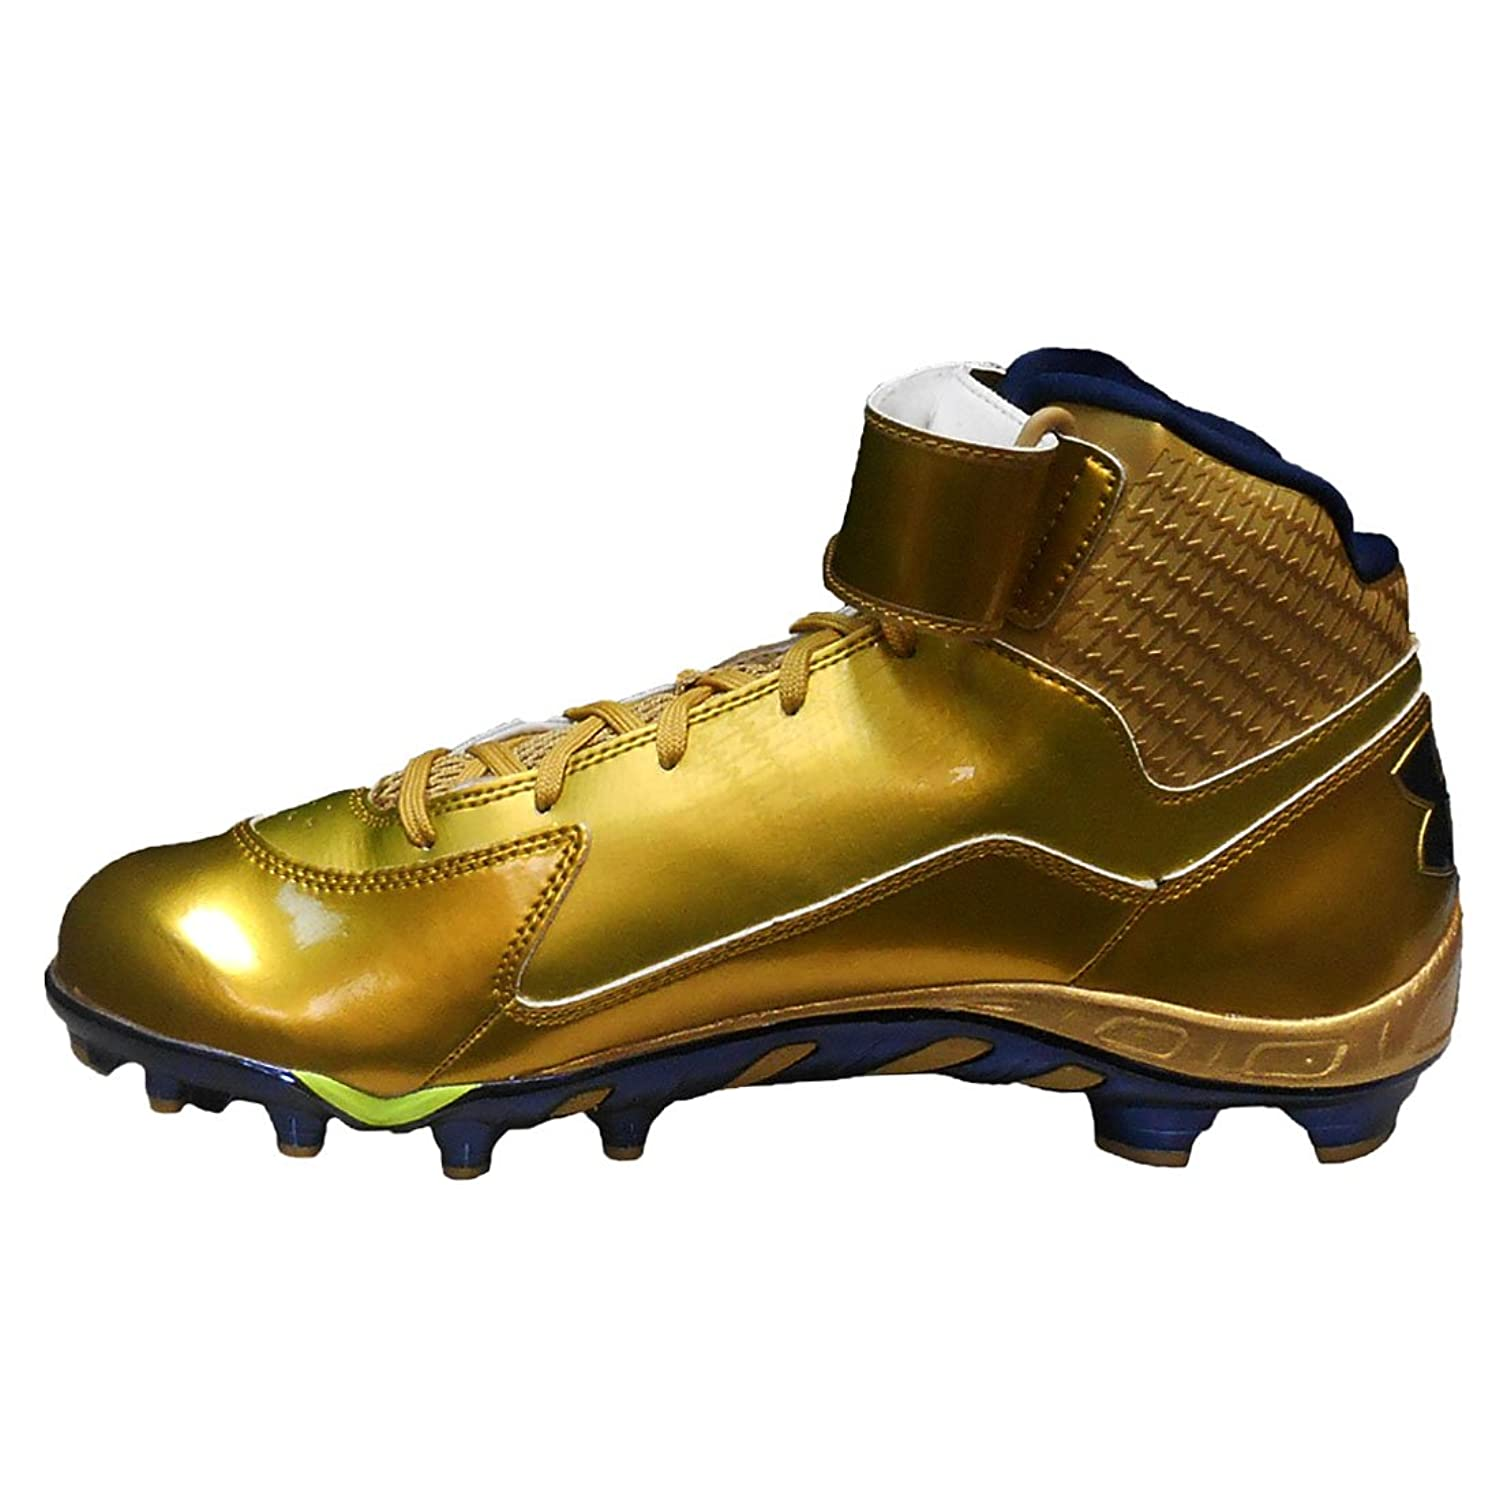 UA Under Armour Team Spine Fierce Molded Football Cleats (12.5, Metallic  Gold/Metallic Gold/Midnight Navy): Amazon.ca: Shoes & Handbags